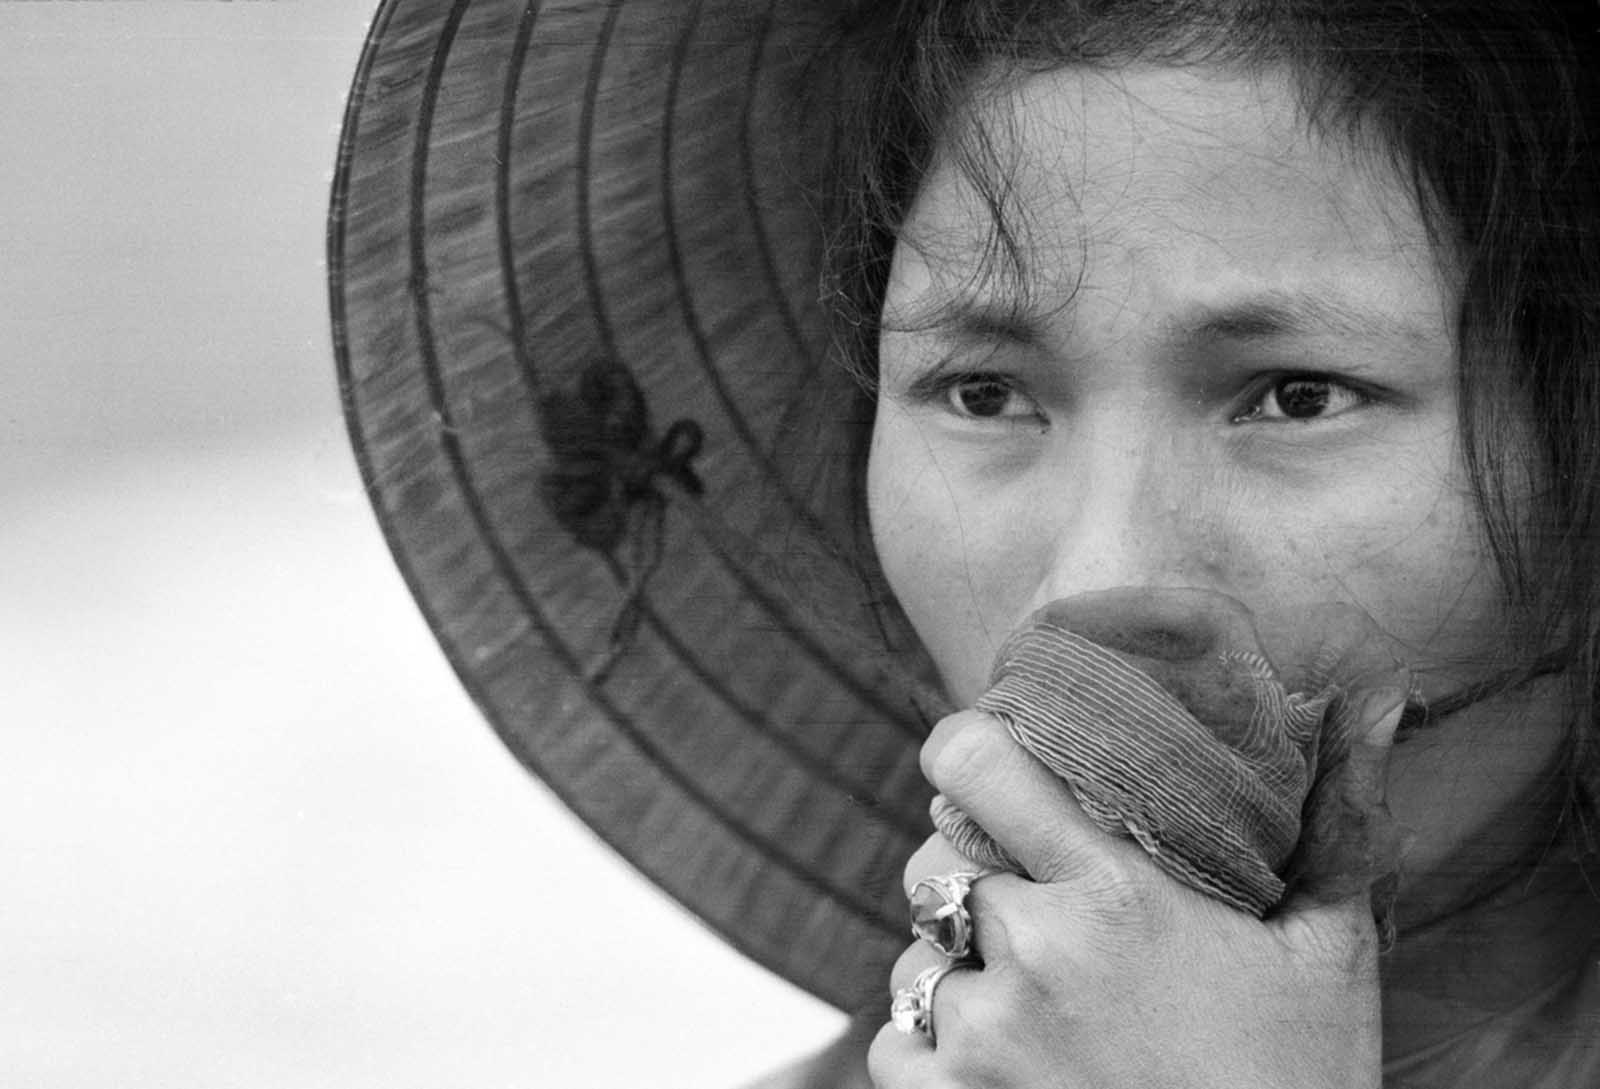 A young South Vietnamese woman covers her mouth as she stares into a mass grave where victims of a reported Viet Cong massacre were being exhumed near Dien Bai village, east of Hue, in April of 1969. The woman's husband, father, and brother had been missing since the Tet Offensive, and were feared to be among those killed by Communist forces.